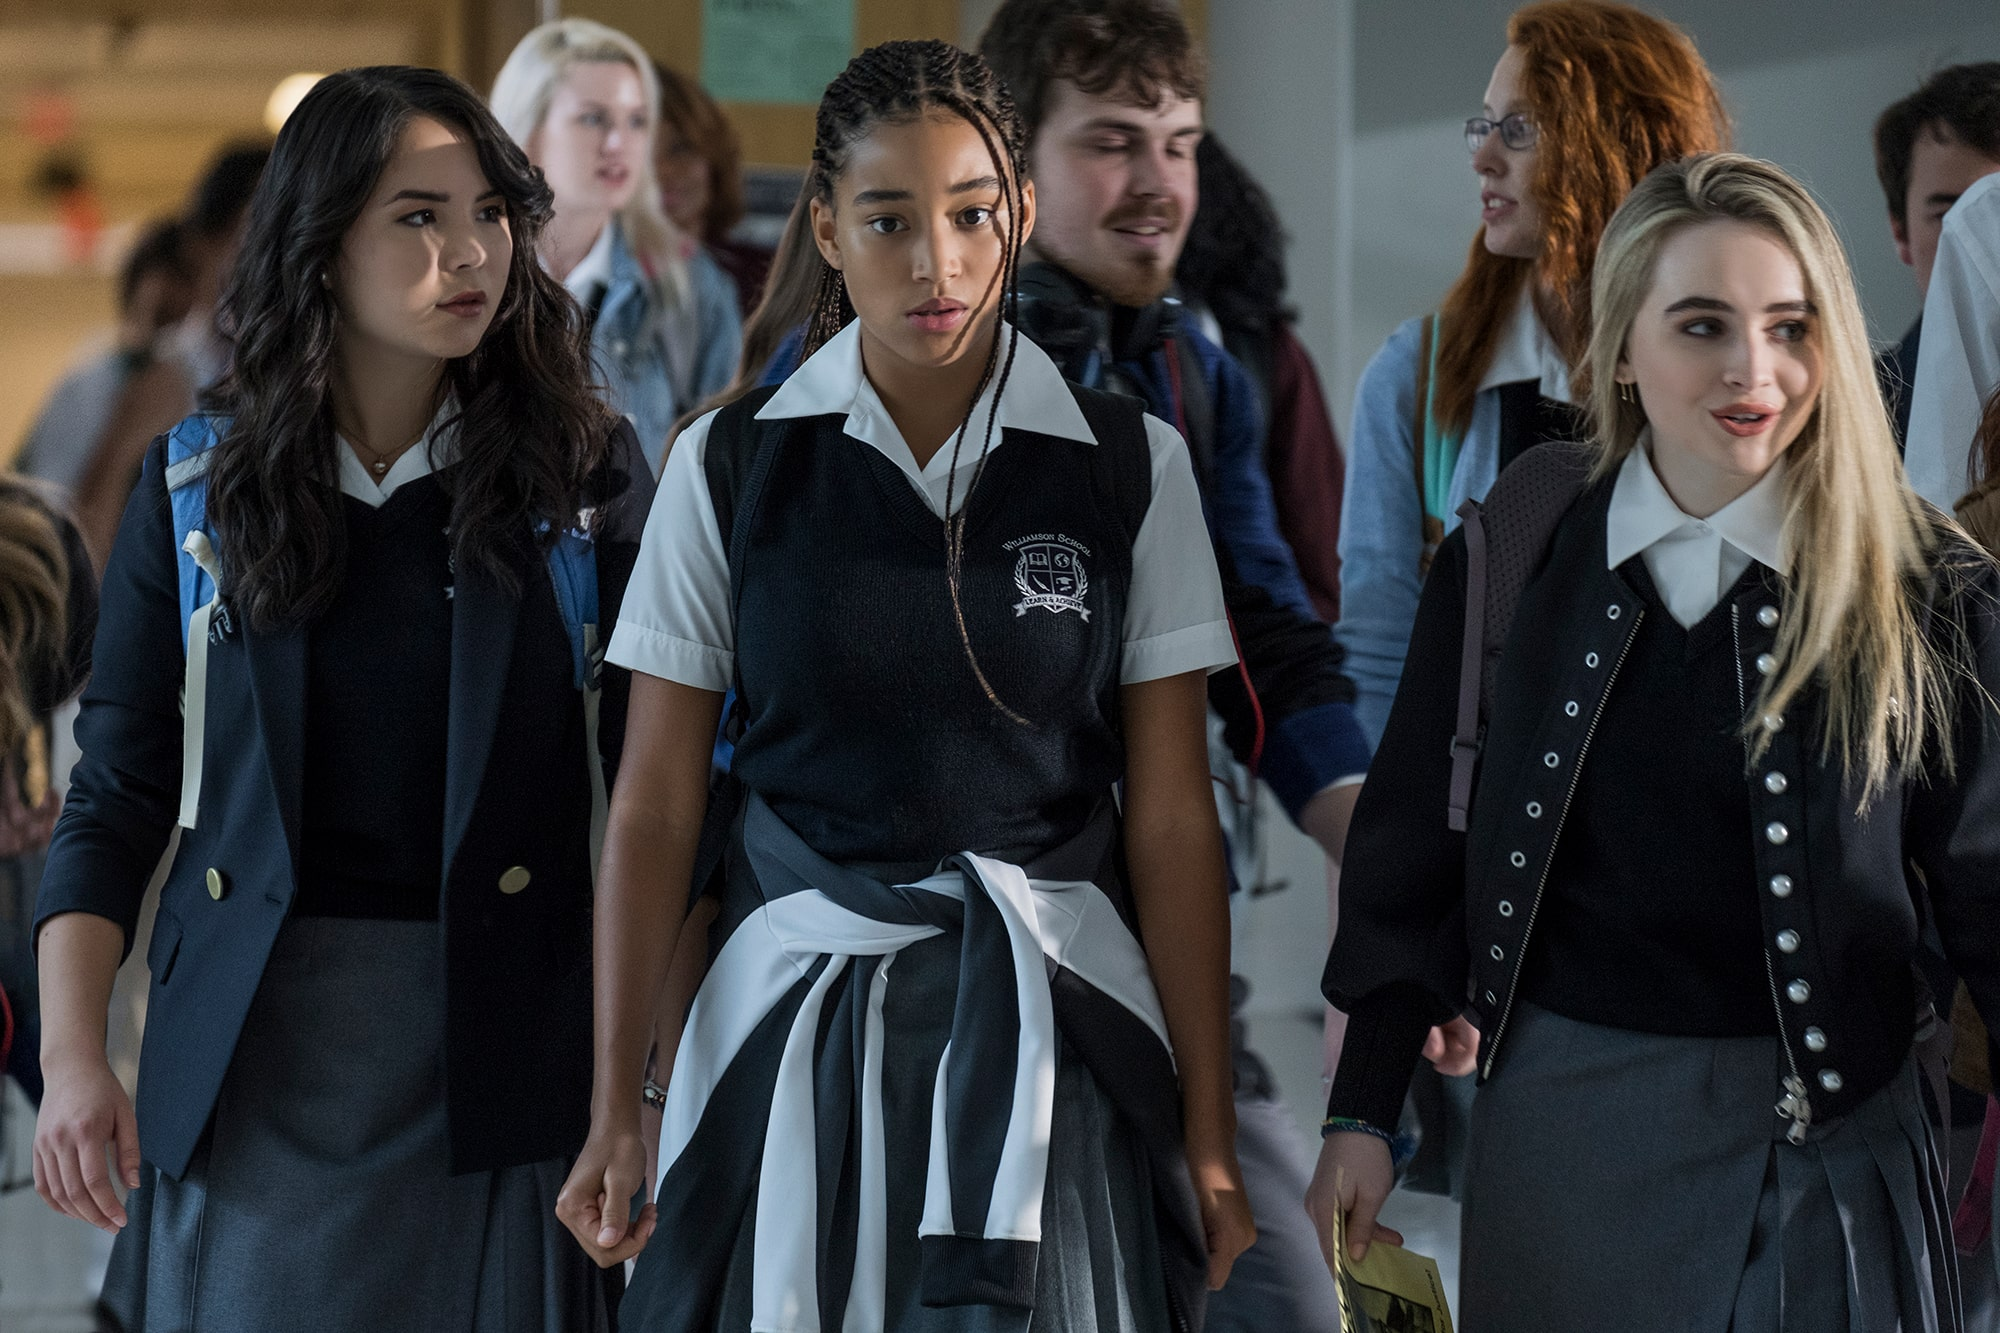 Sneak-Review #147: The Hate U Give